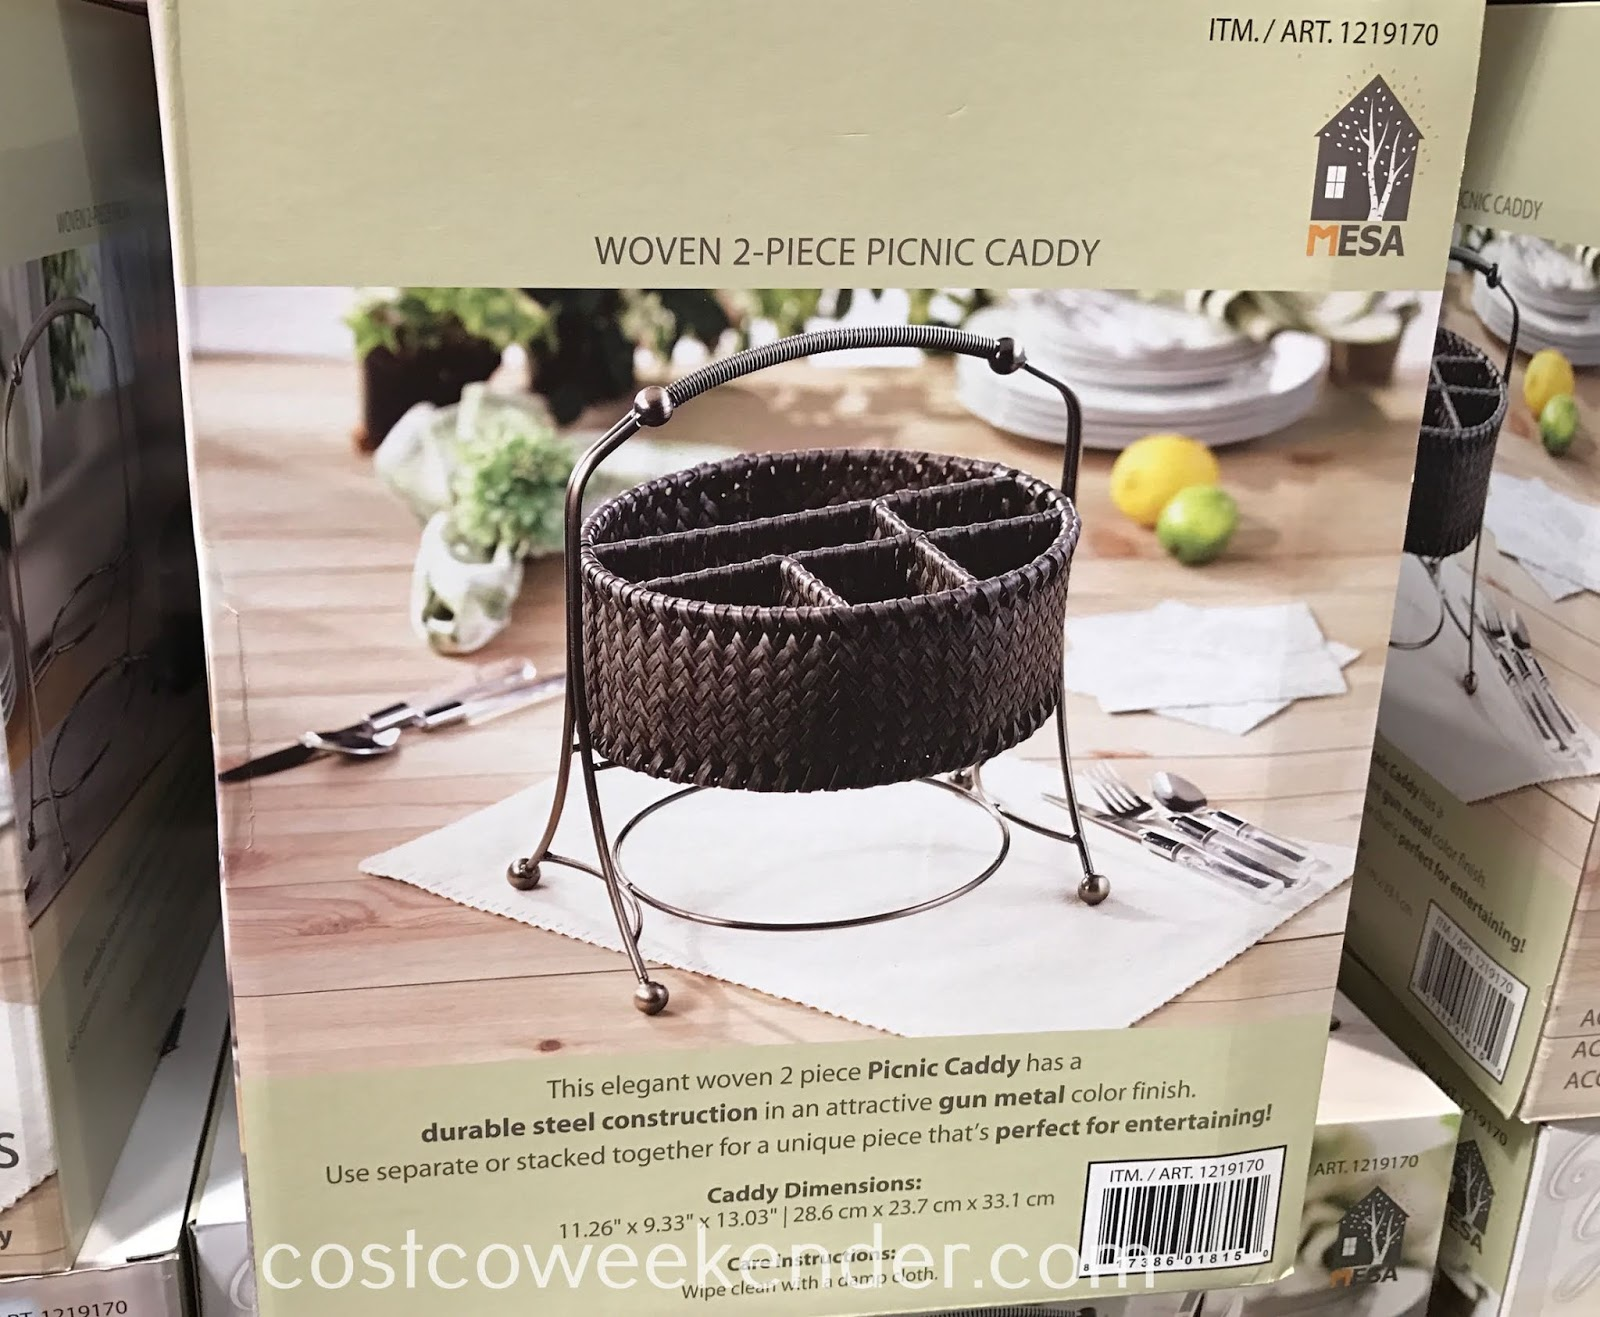 Costco 1219170 - Mesa Woven Picnic Caddy: great for picnics, bbqs, and tailgating